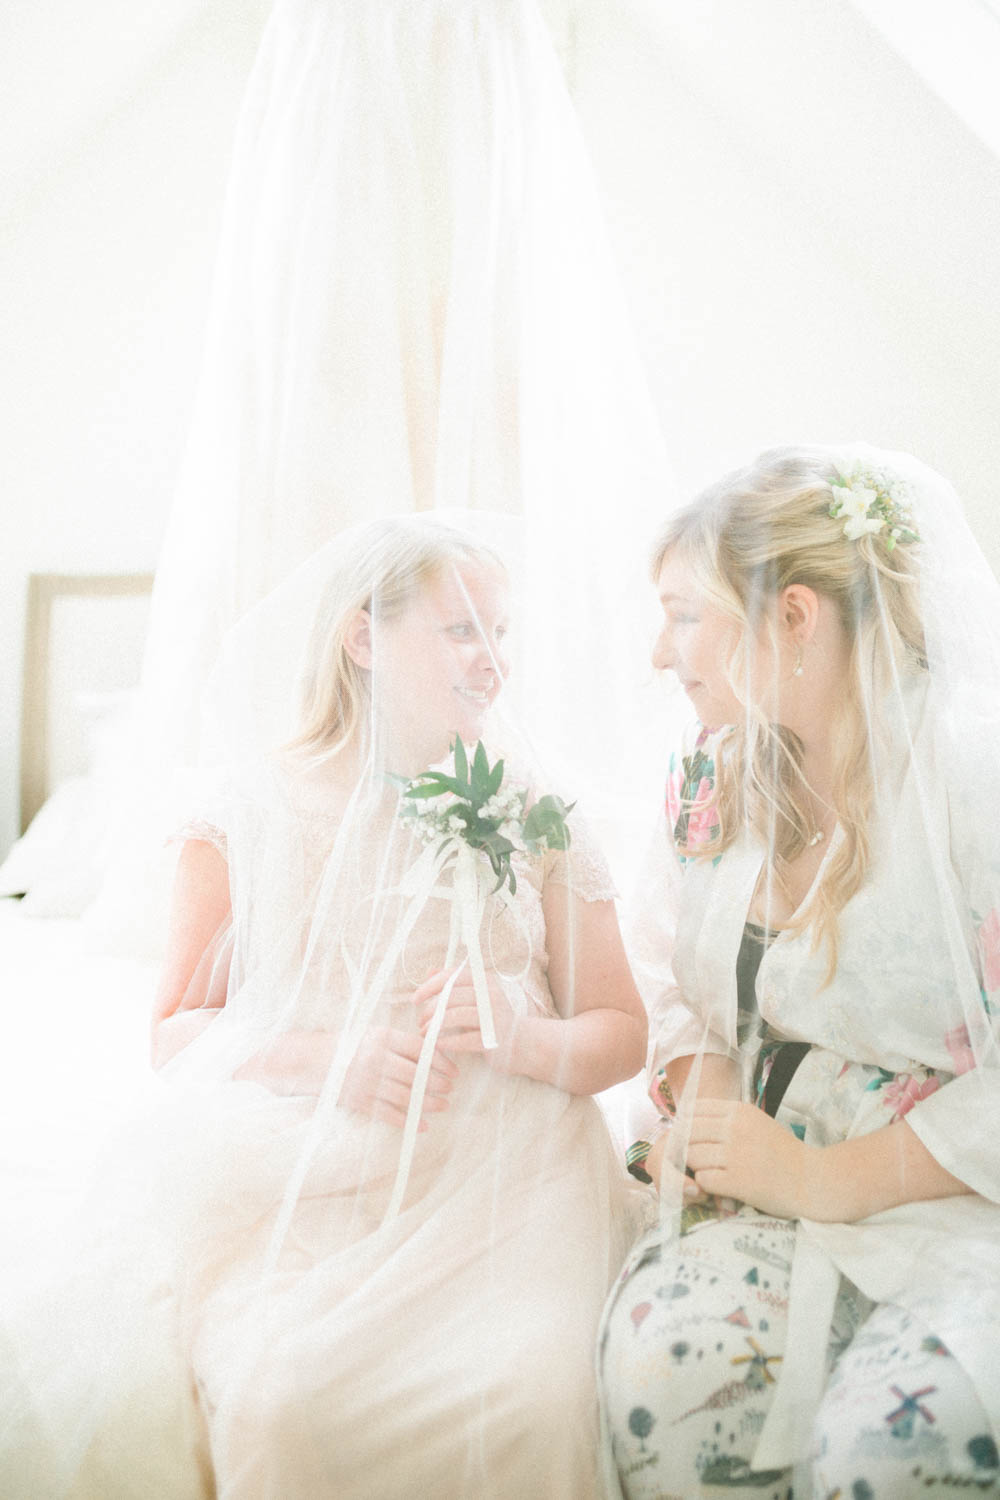 Special-Day-Photography-Cripps-Barn-Cirencester-Gloucester-Barn-Wedding-the-bride-and-neice-play-in-the-veil.jpg